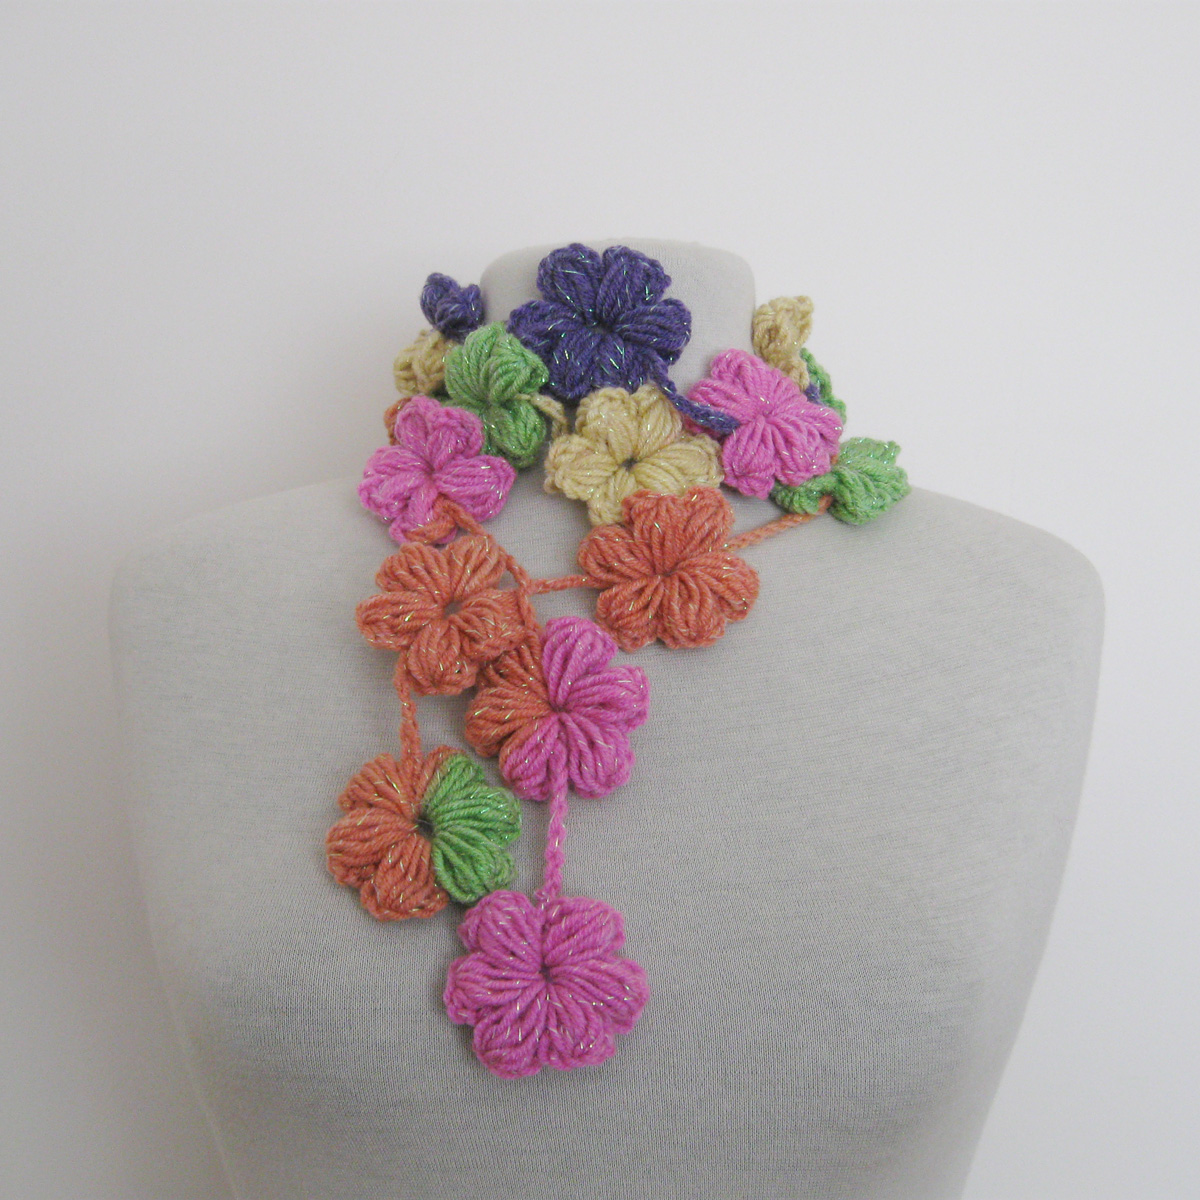 Crochet flower lace pattern